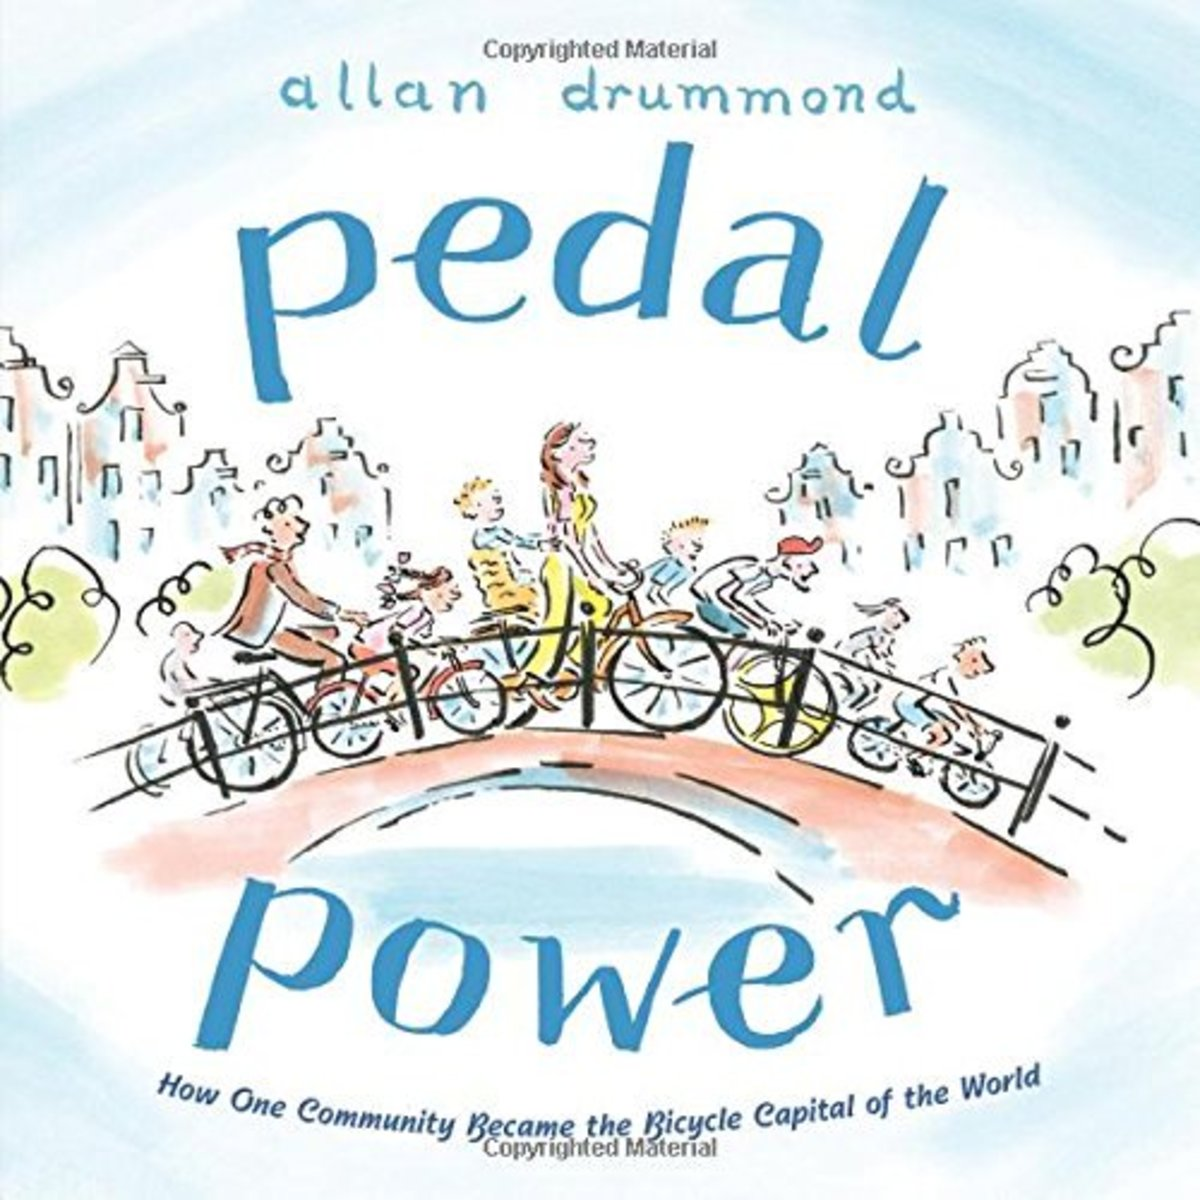 Pedal Power: How One Community Became the Bicycle Capital of the World